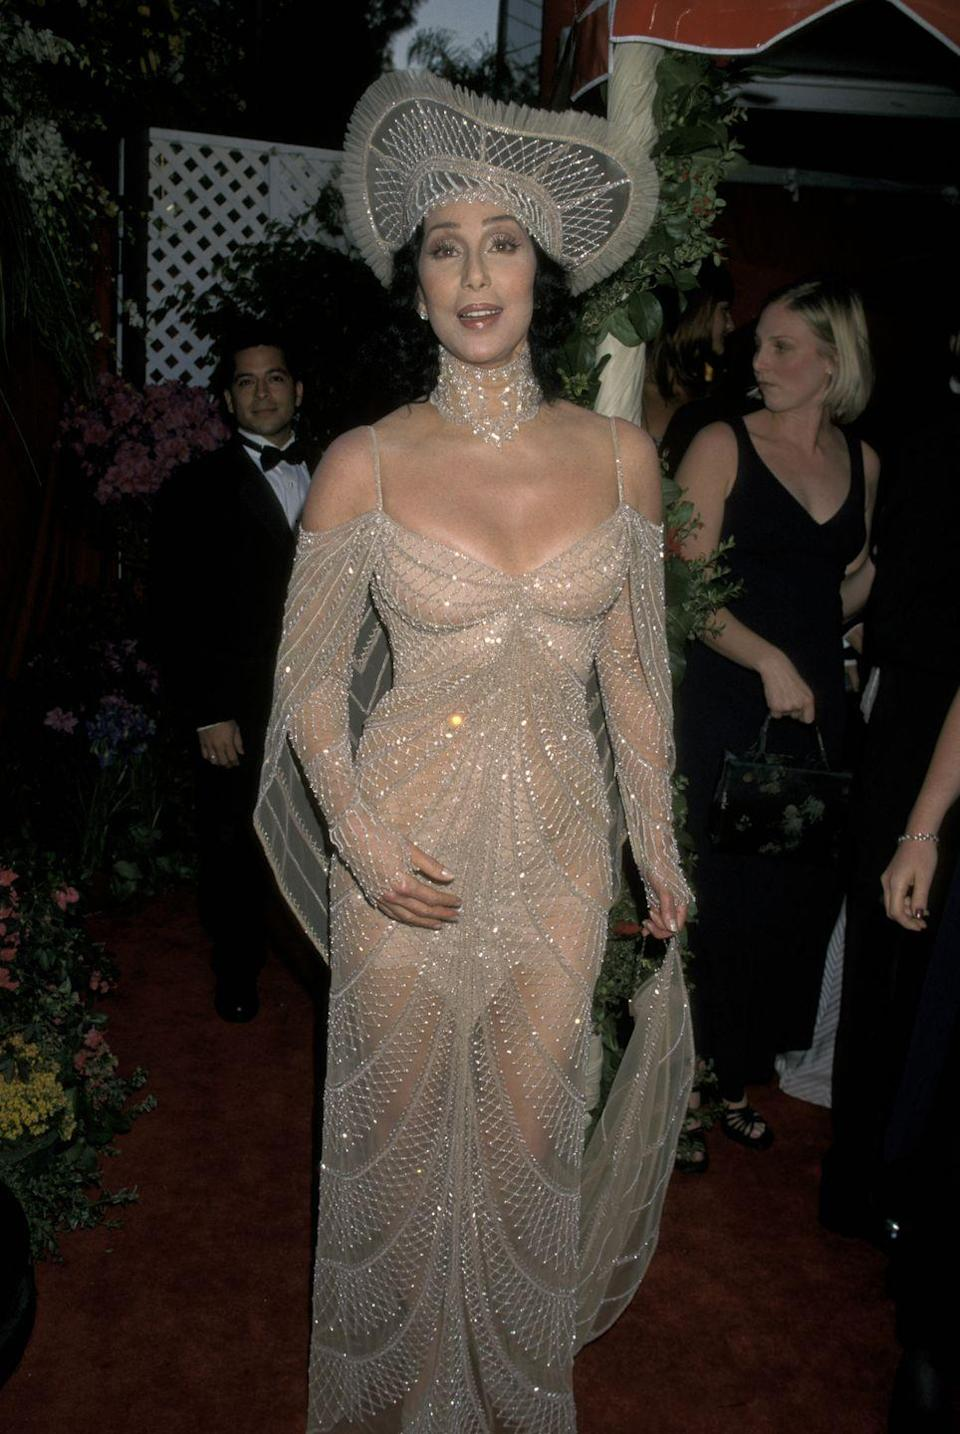 <p>Cher rolled up to the Oscars in this see-through cold-shoulder embellished gown that also had a matching choker and headpiece. It even had a train for an extra ~dramatic~ effect. </p>